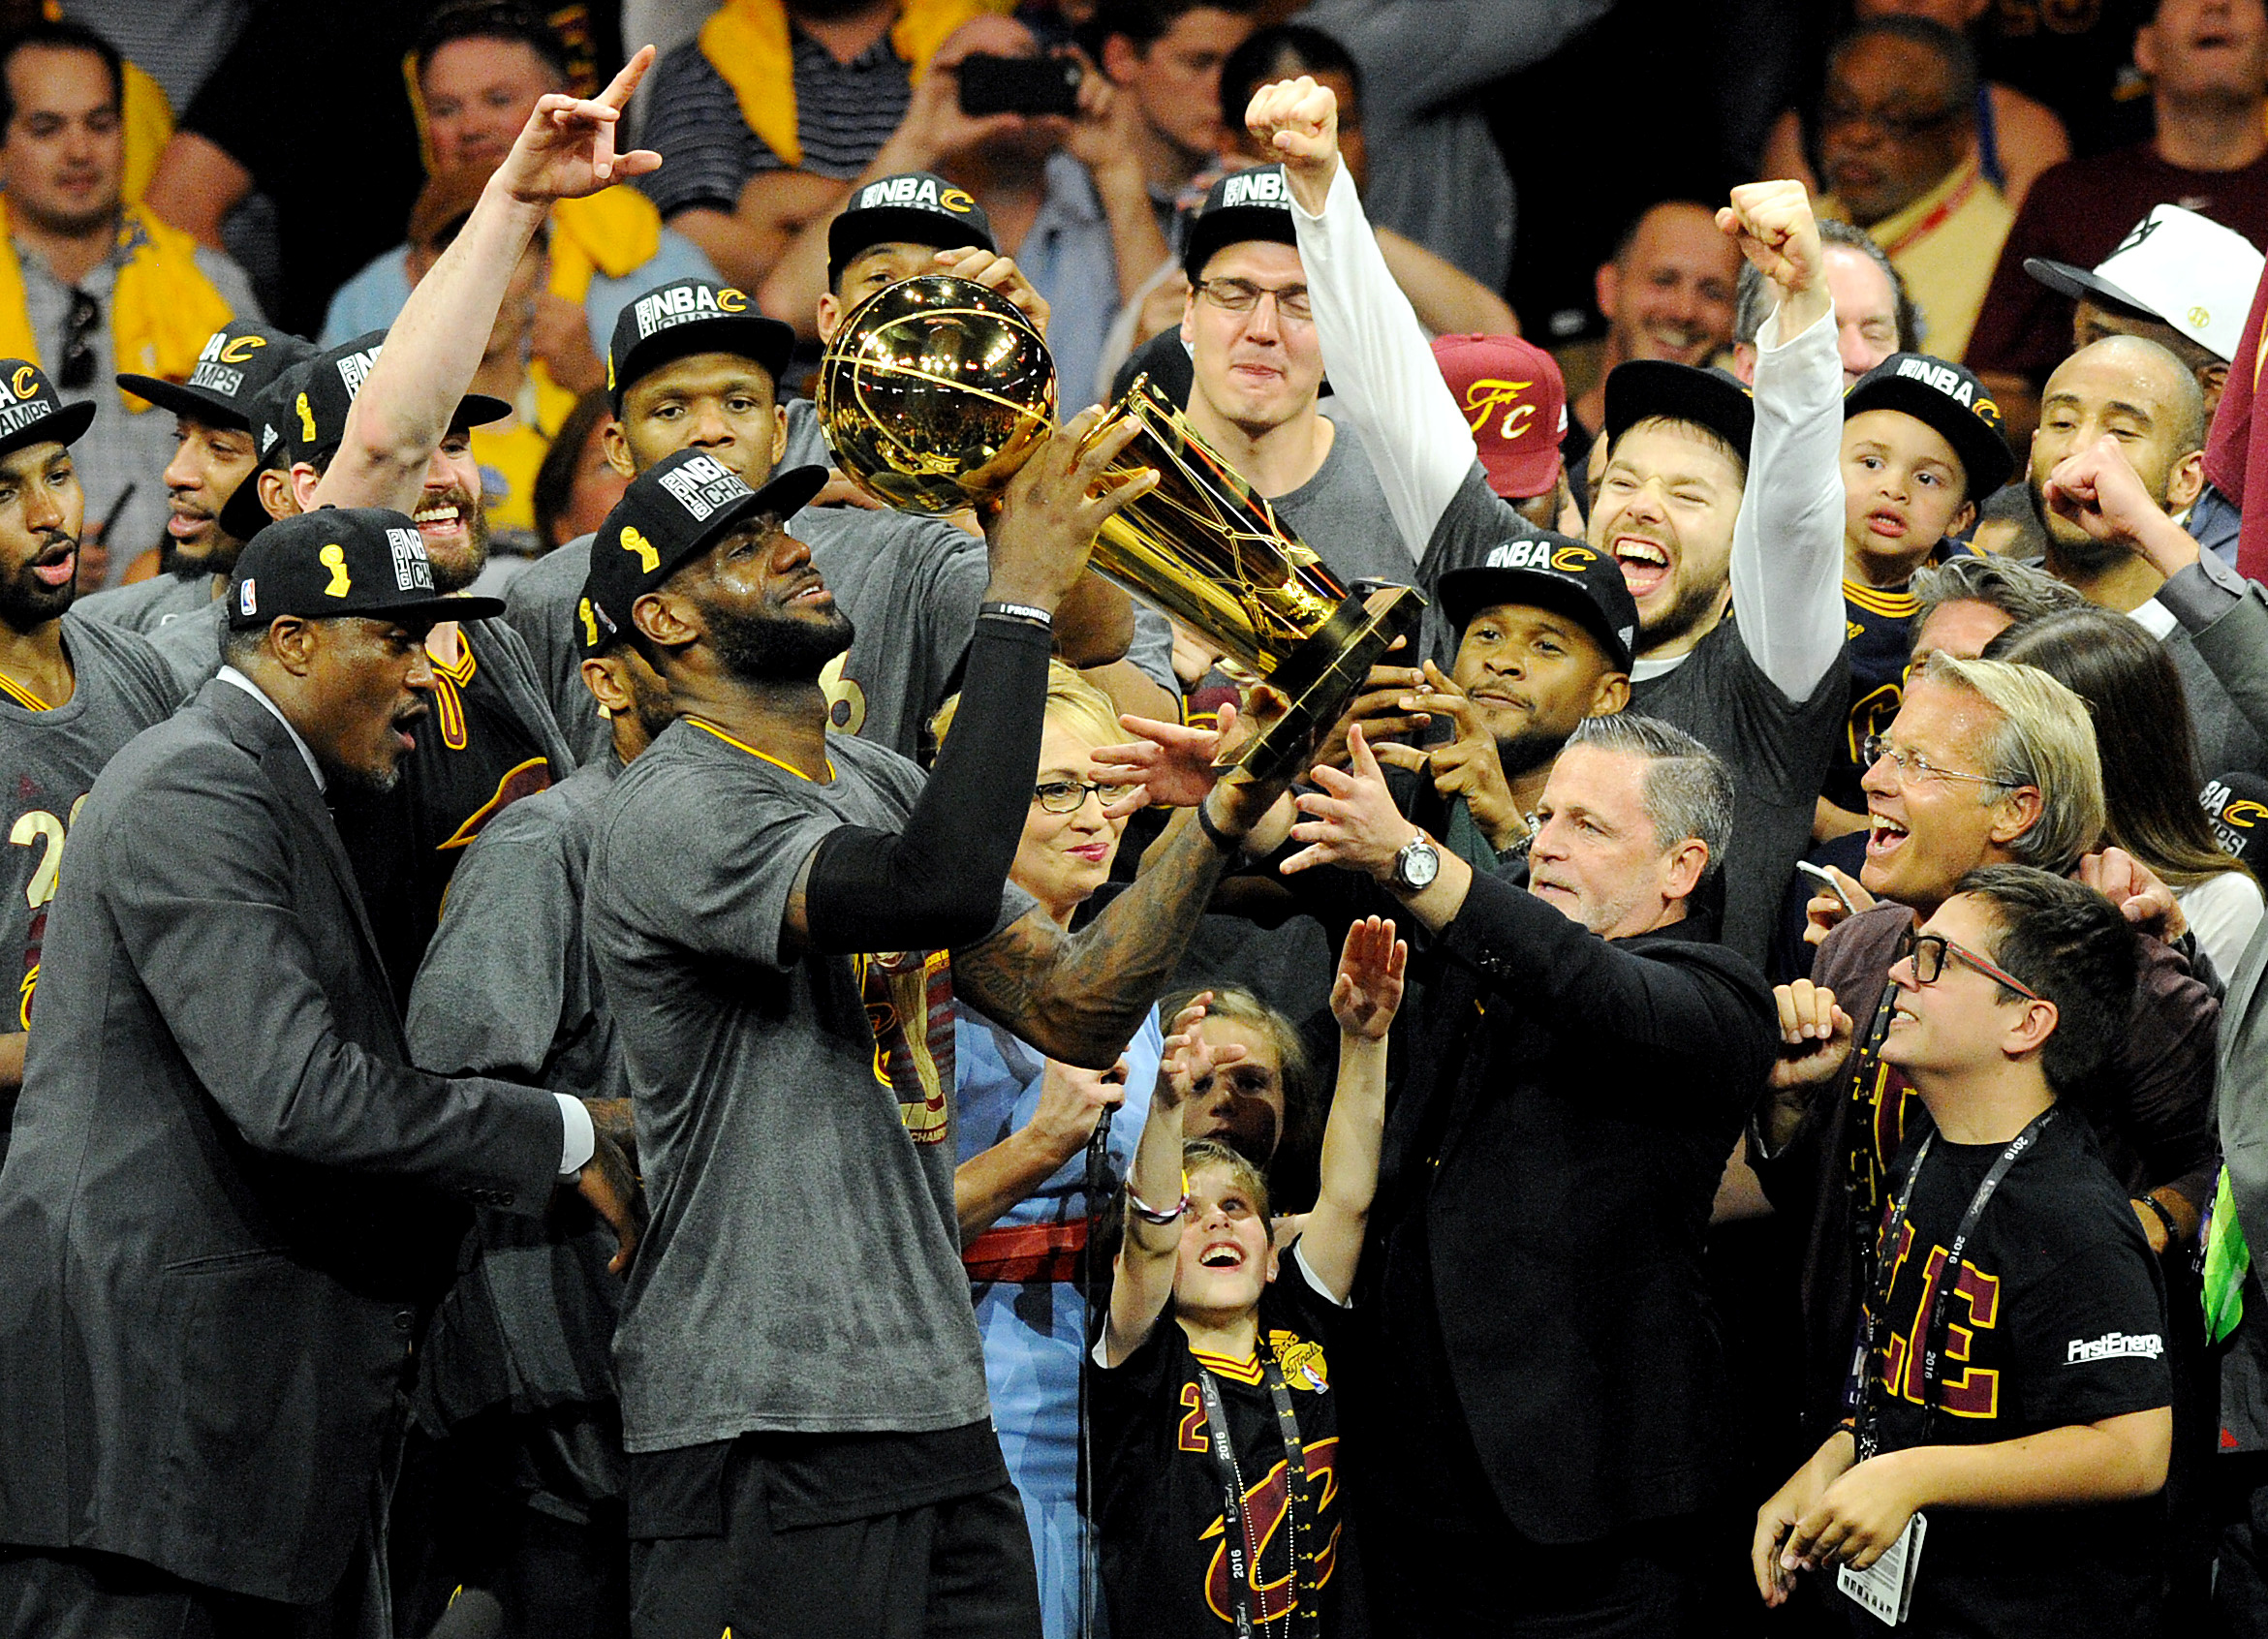 The Cleveland Cavaliers celebrate their first NBA Championship in franchise history (Photo: Reuters)